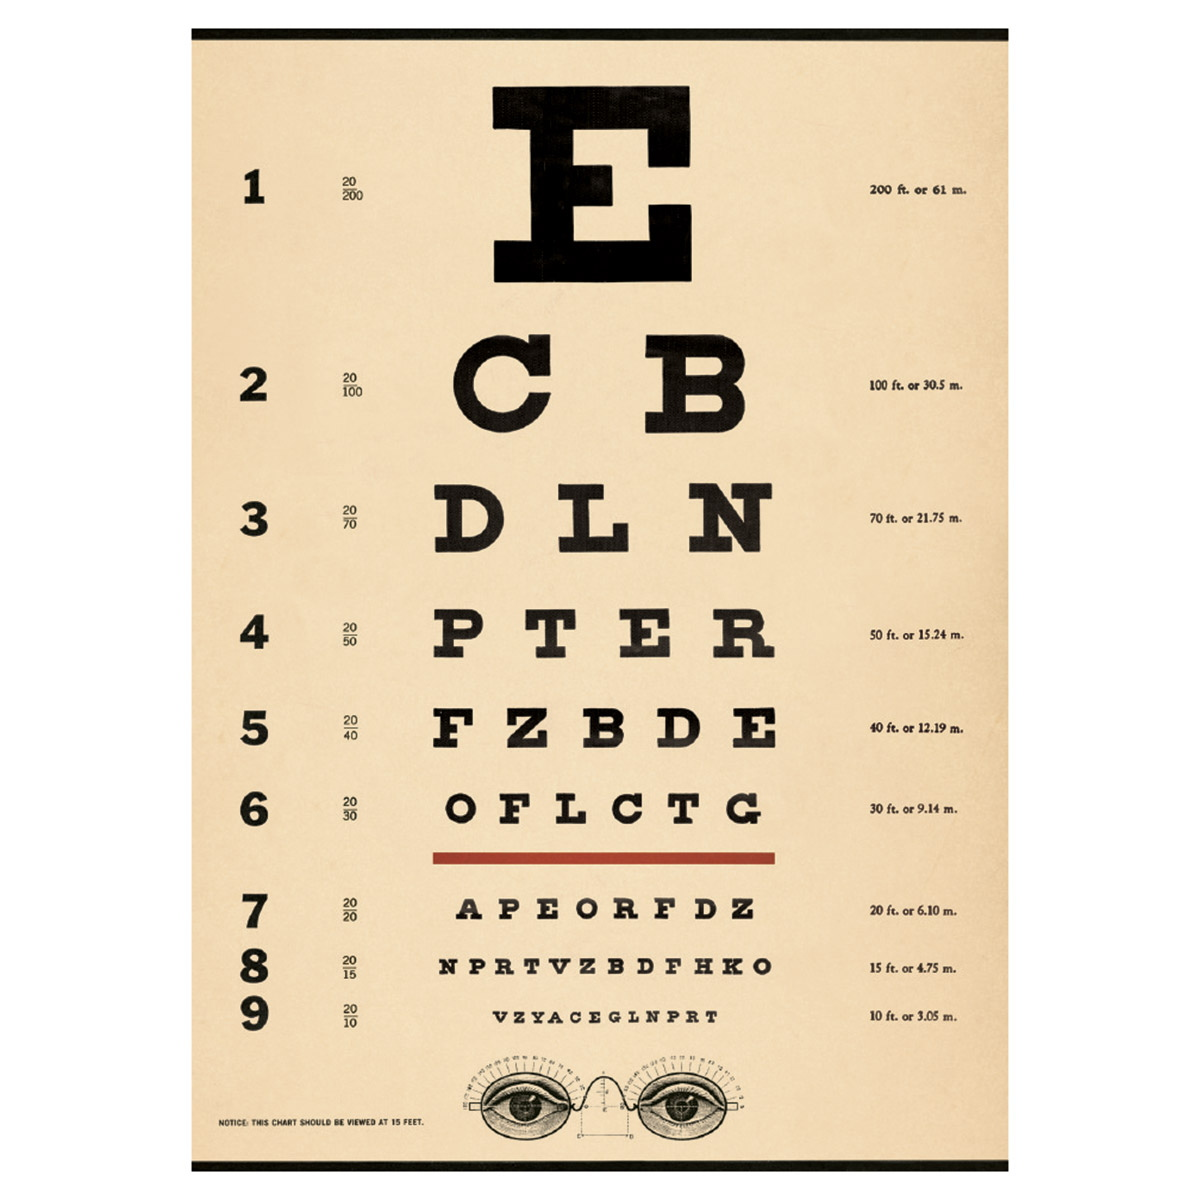 eye chart doctors office chart poster vintage style